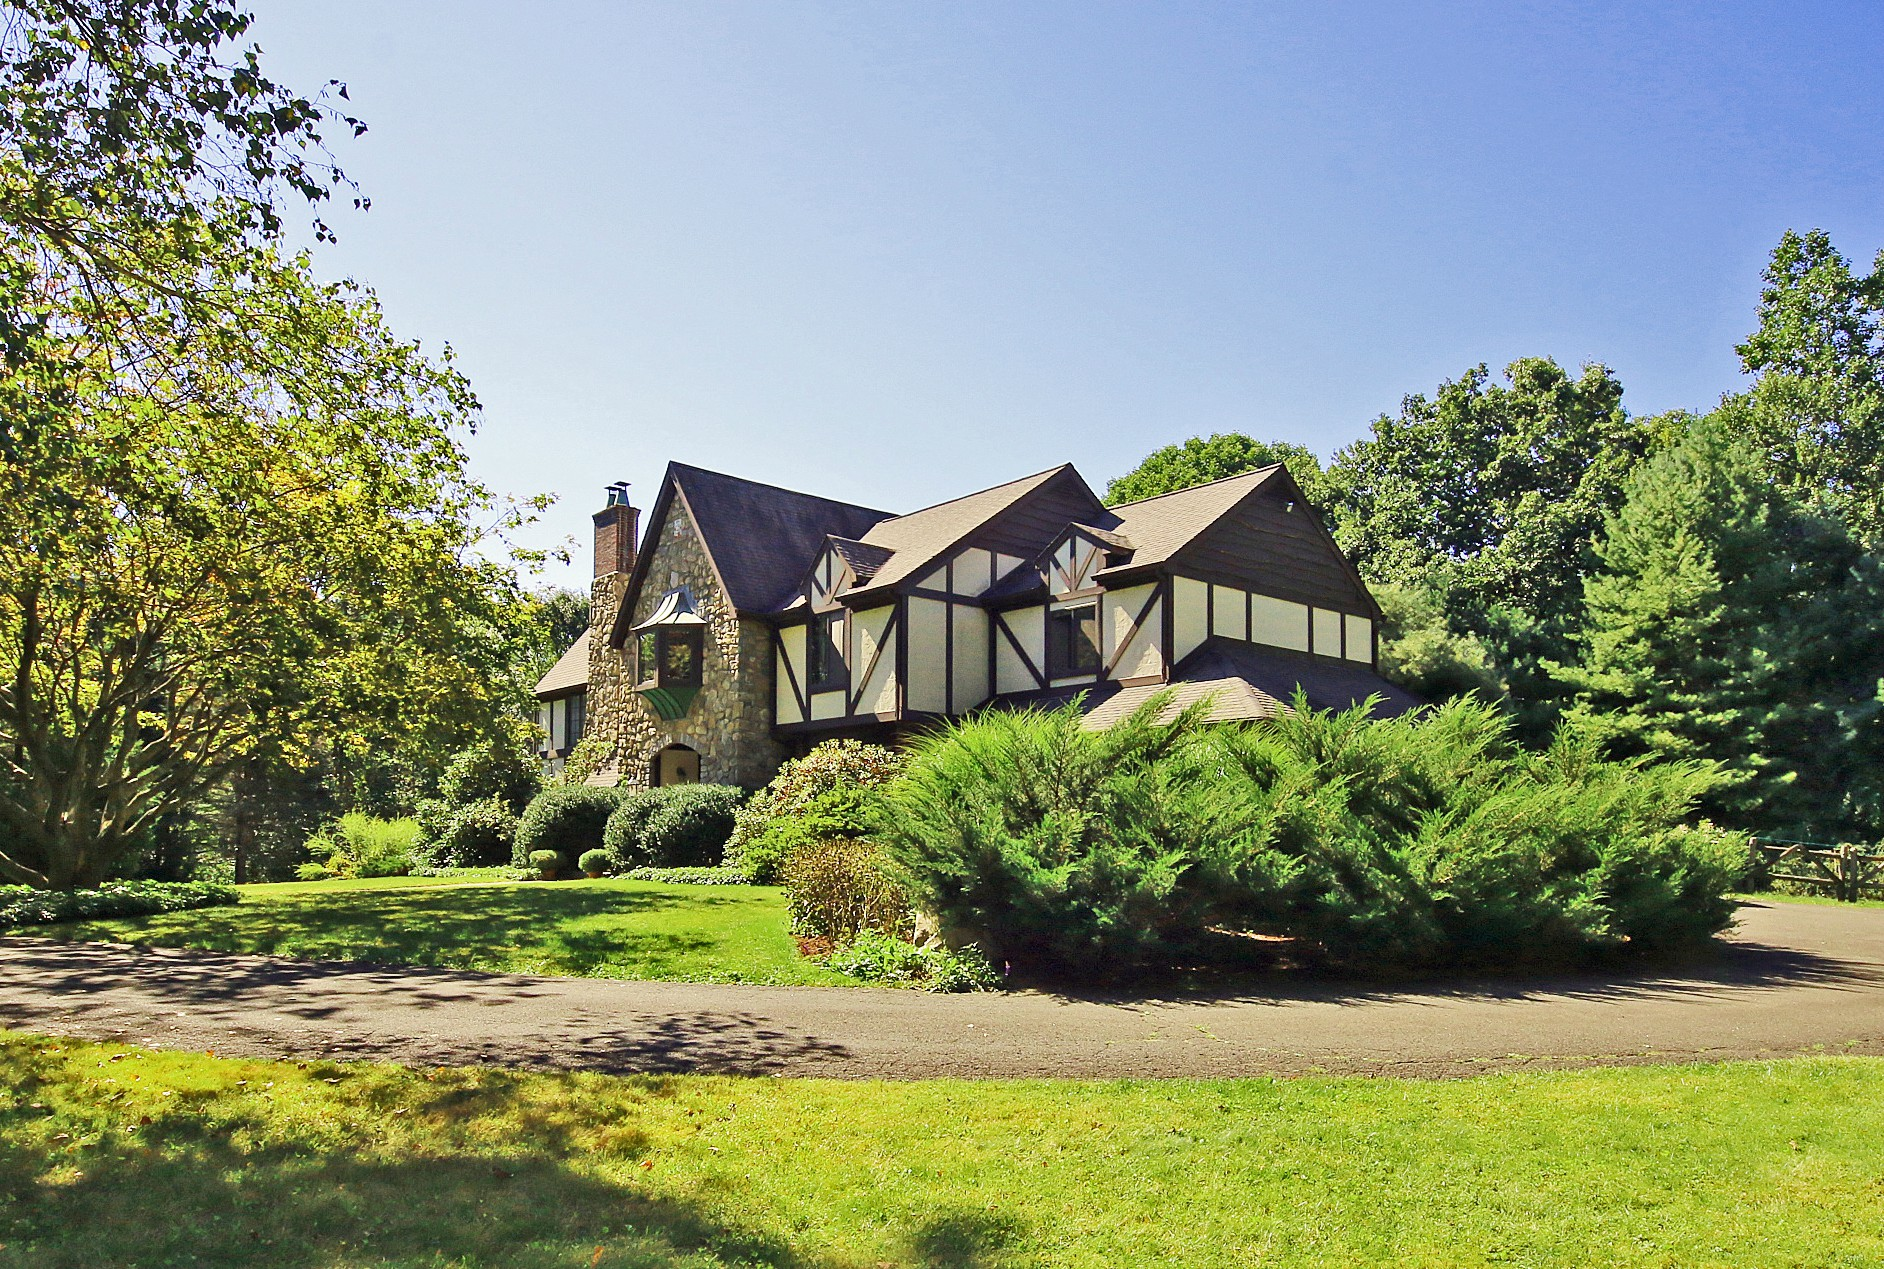 Casa Unifamiliar por un Venta en Stately English Stone Tudor 15 Tunxis Trail Redding, Connecticut, 06896 Estados Unidos